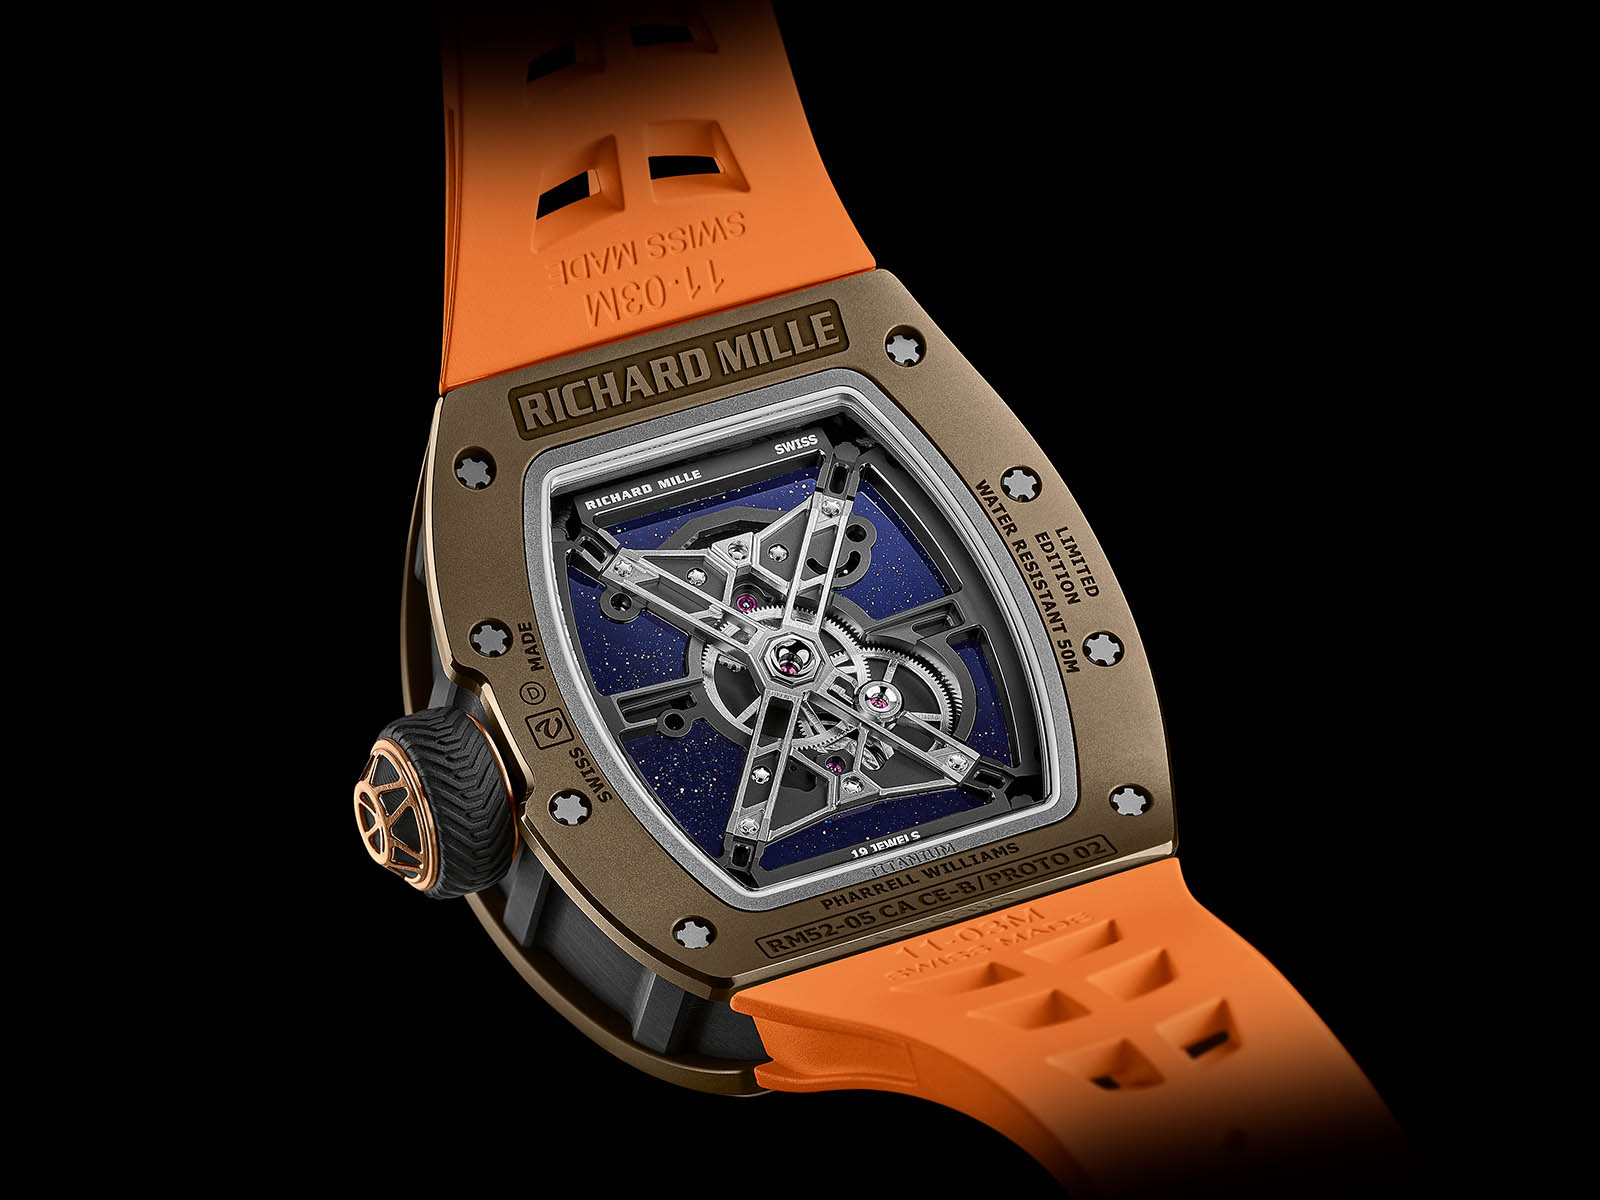 rm-52-05-richard-mille-tourbillon-pharrell-williams-7.jpg